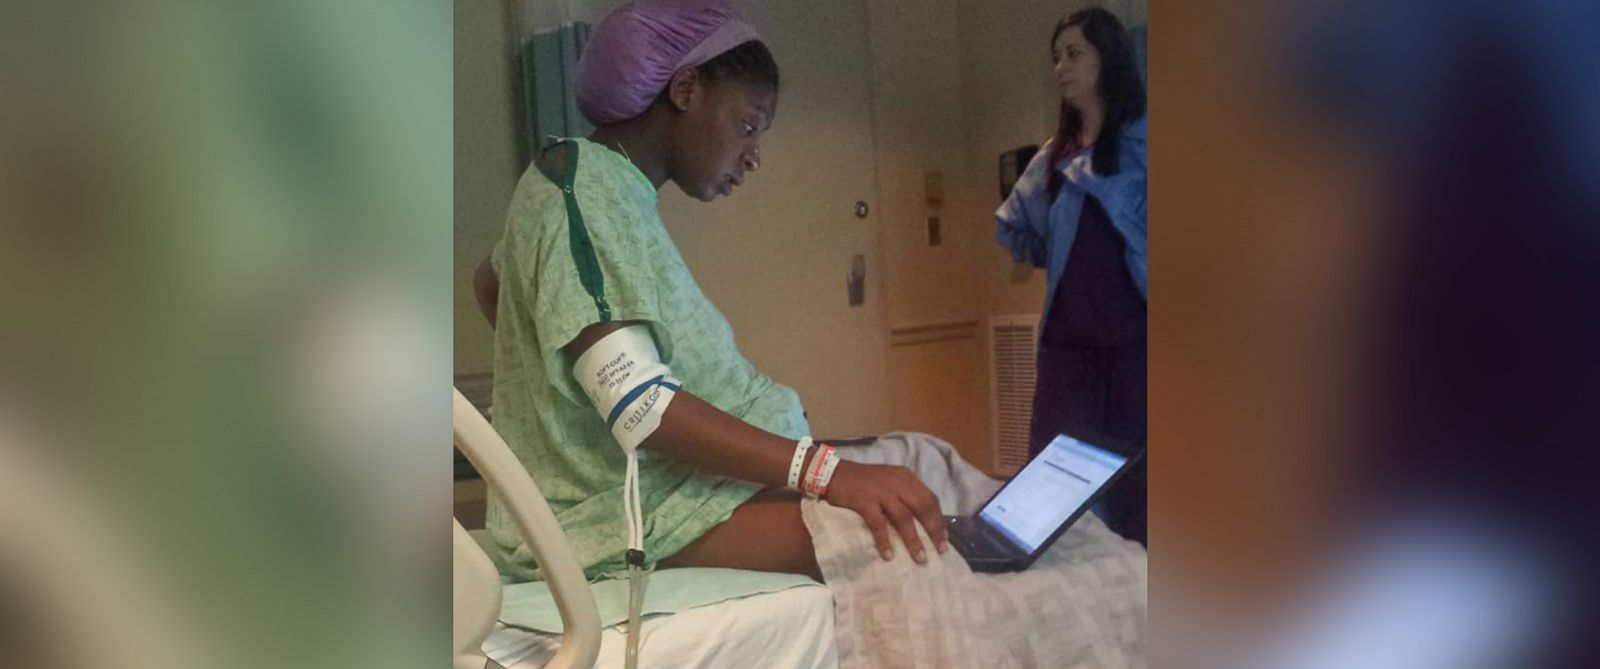 PHOTO: Tommitrise Collins takes her psychology exam while in labor last week at Coliseum Medical Center in Macon, Ga.